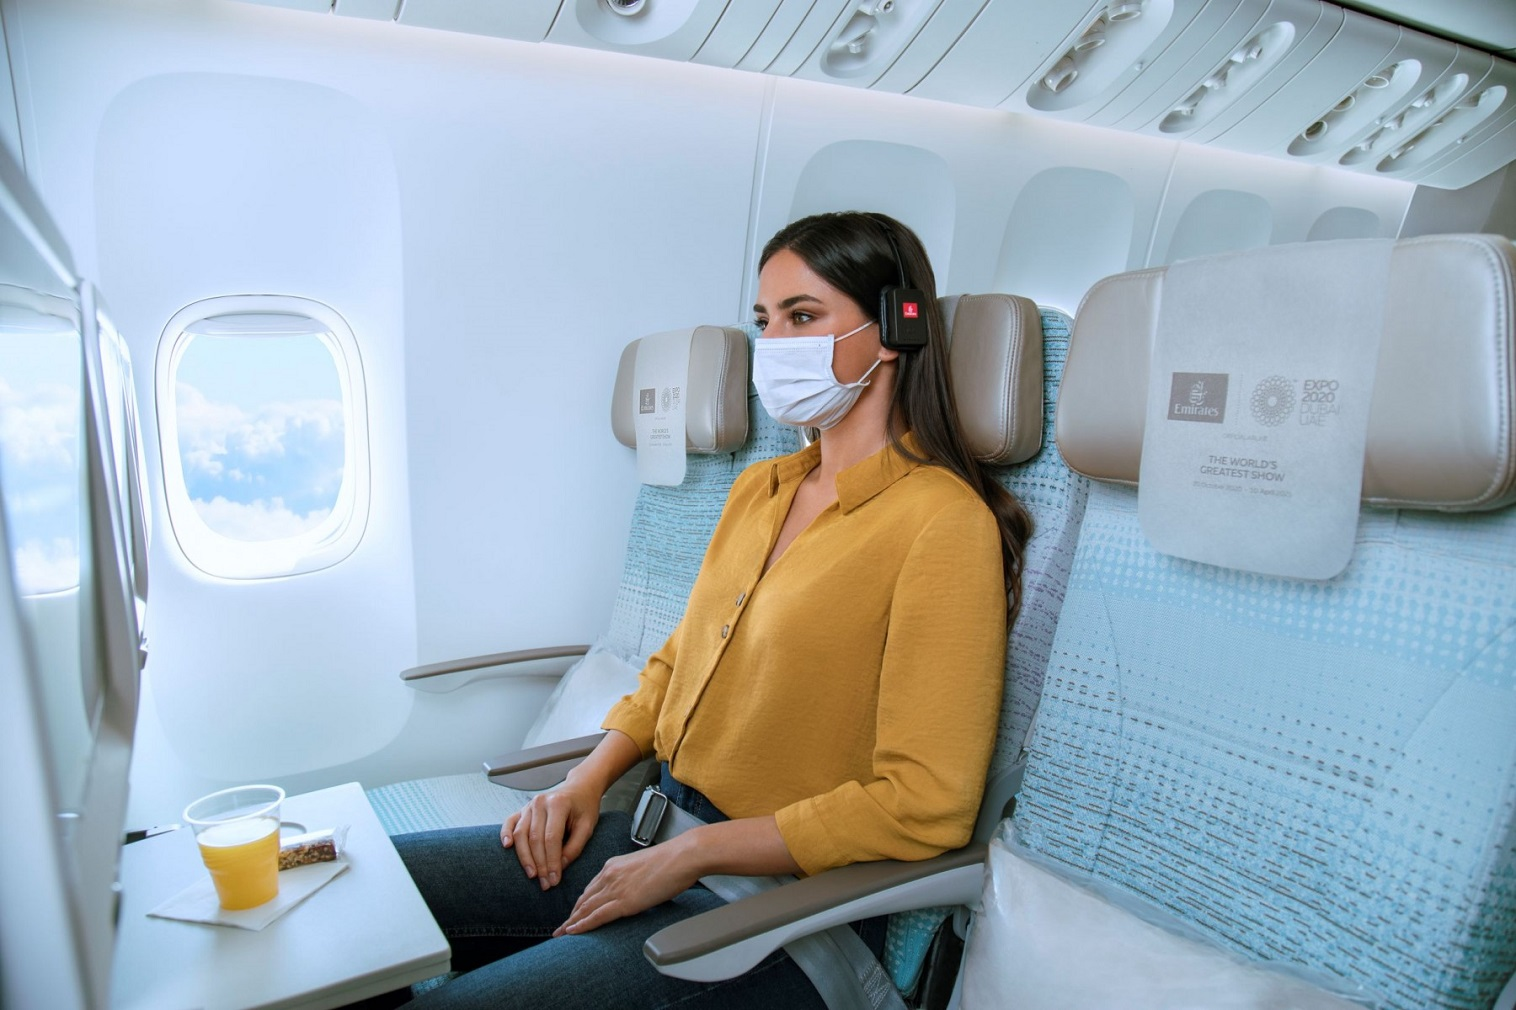 Emirates Airline has introduced generous discounts on excess baggage rates to support demand from customers flying on essential trips.